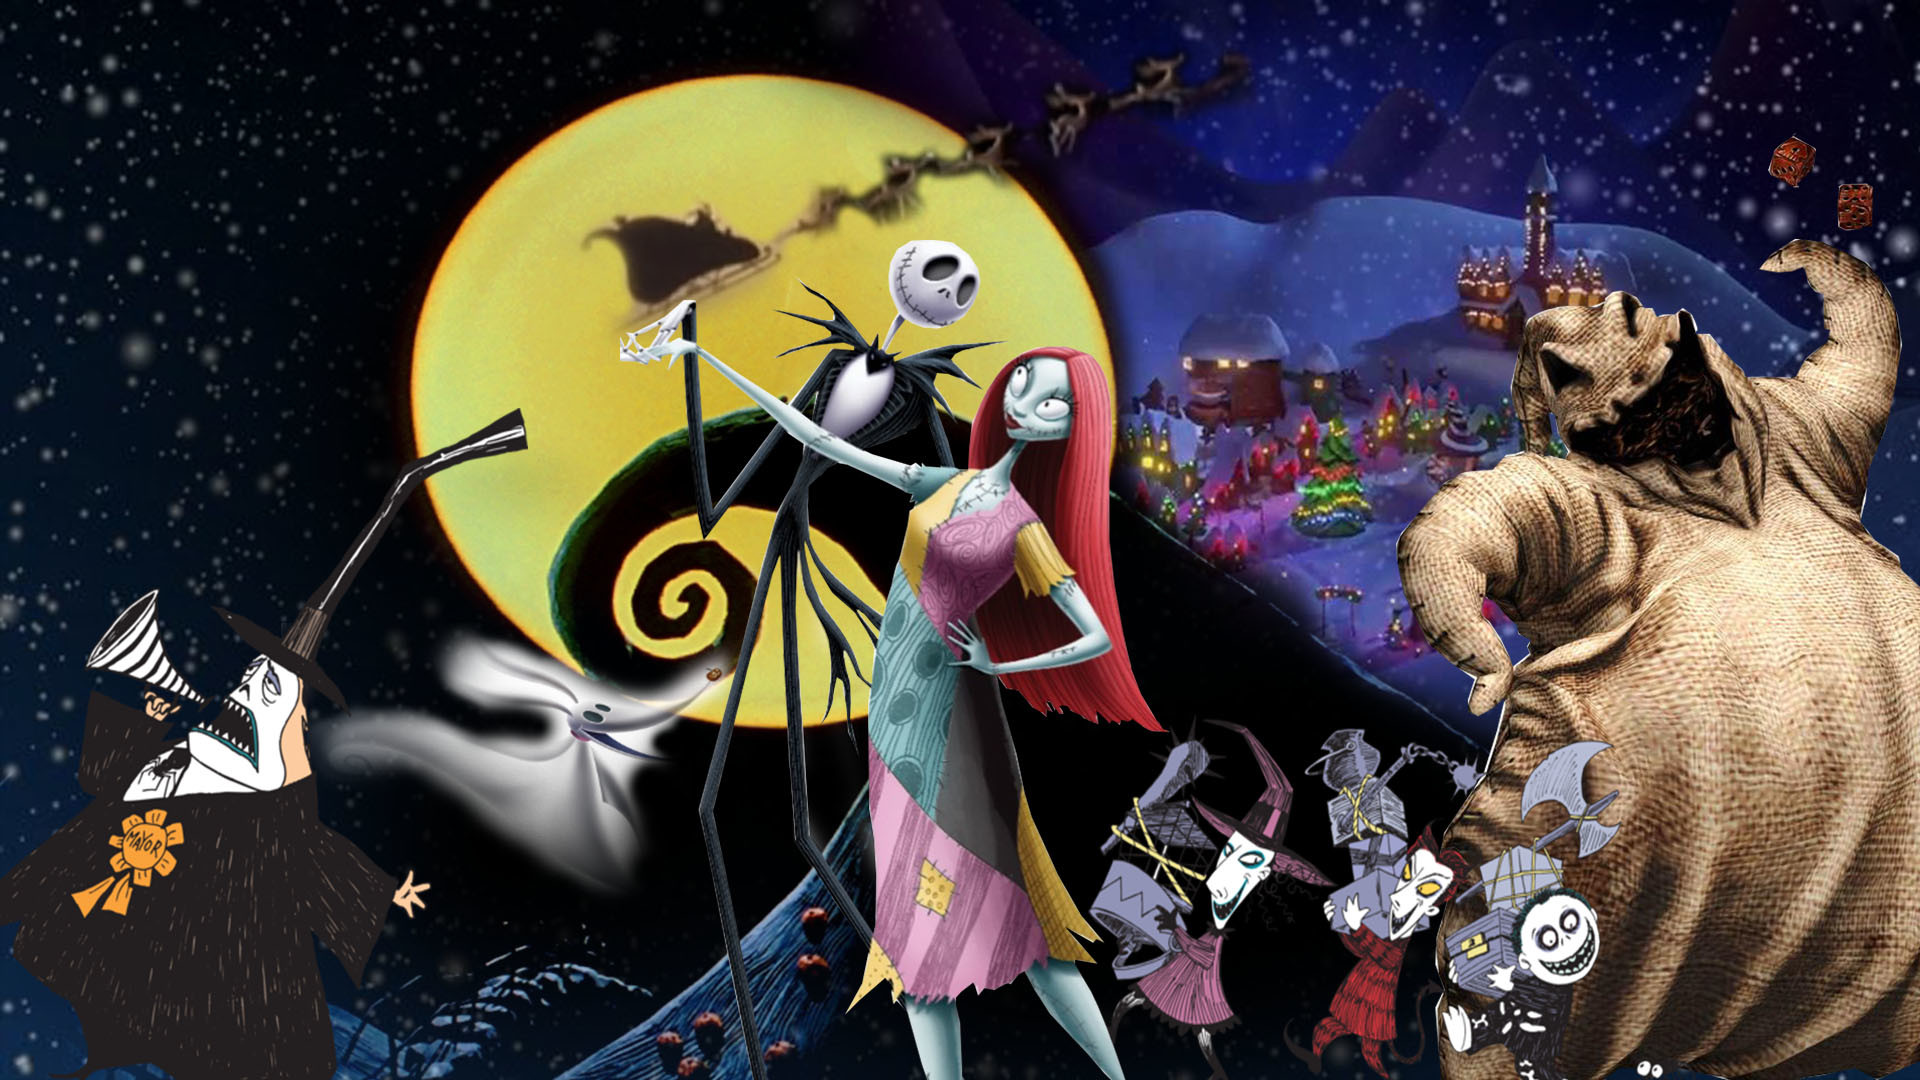 Nightmare Before Christmas Backgrounds 61 pictures 1920x1080